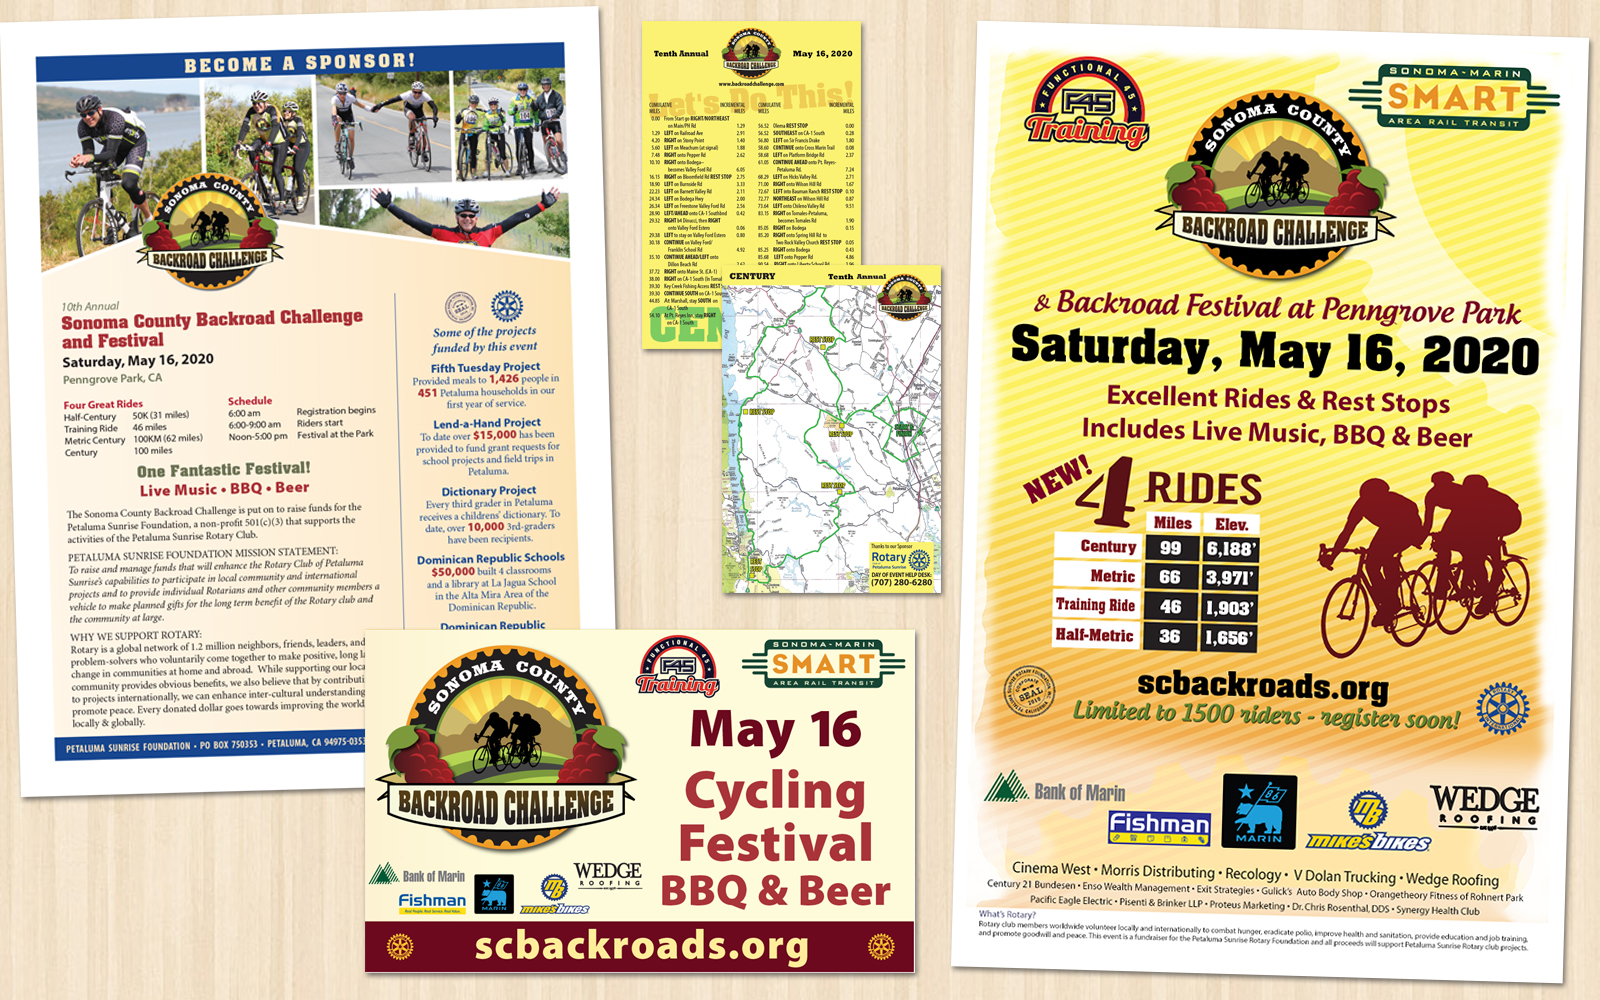 Sonoma County Backroad Challenge 2020 Marketing Materials